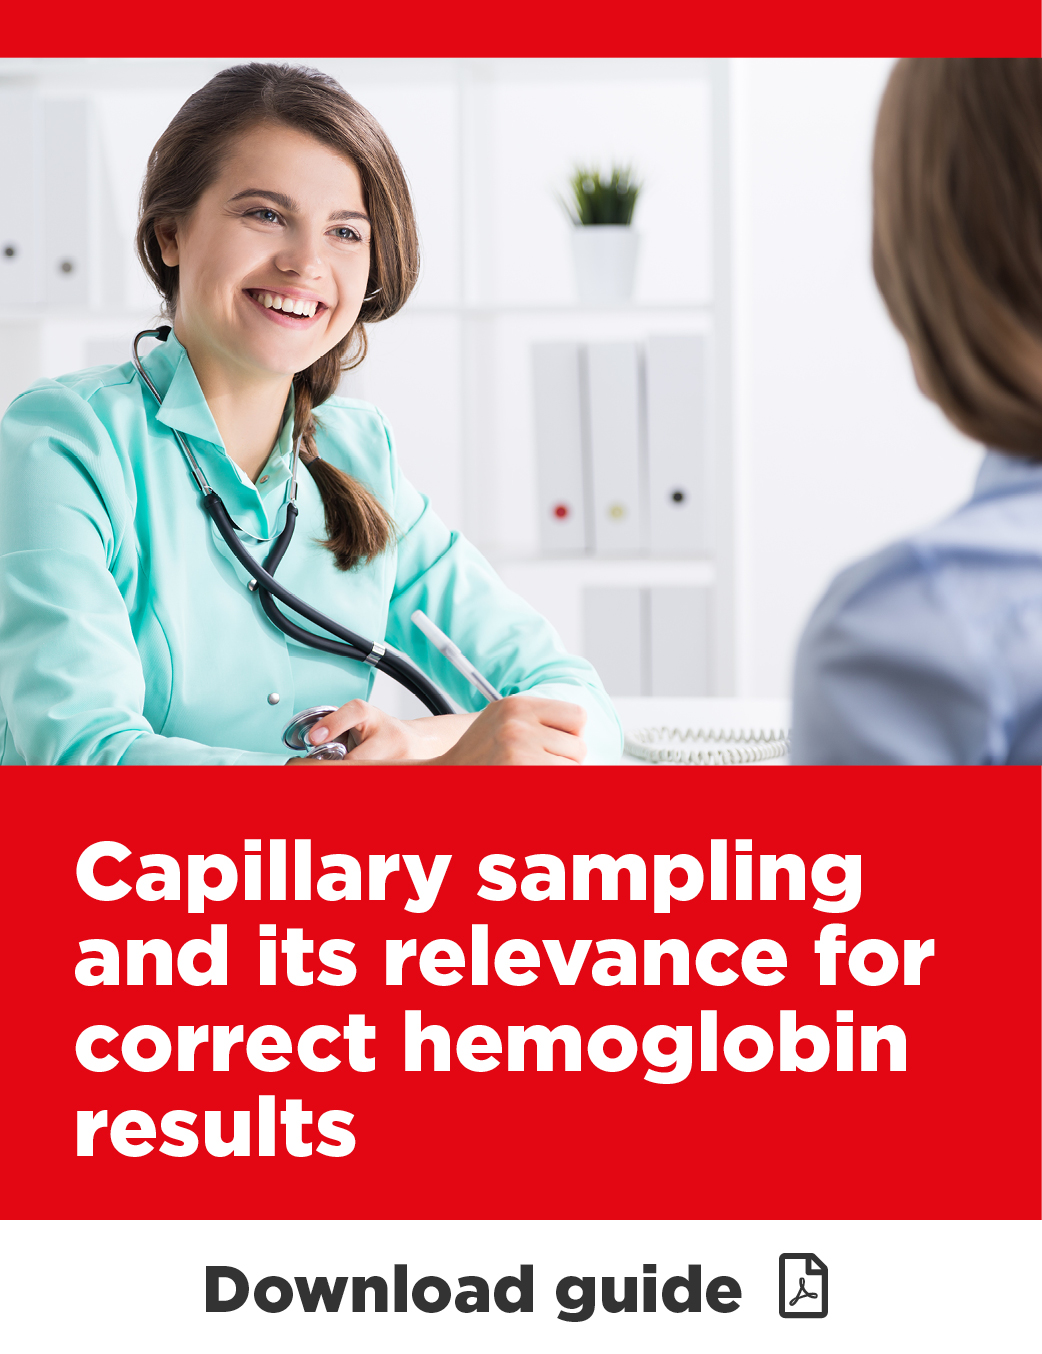 Capillary-sampling-and-its-relevance-for-correct-hemoglobin-results-download